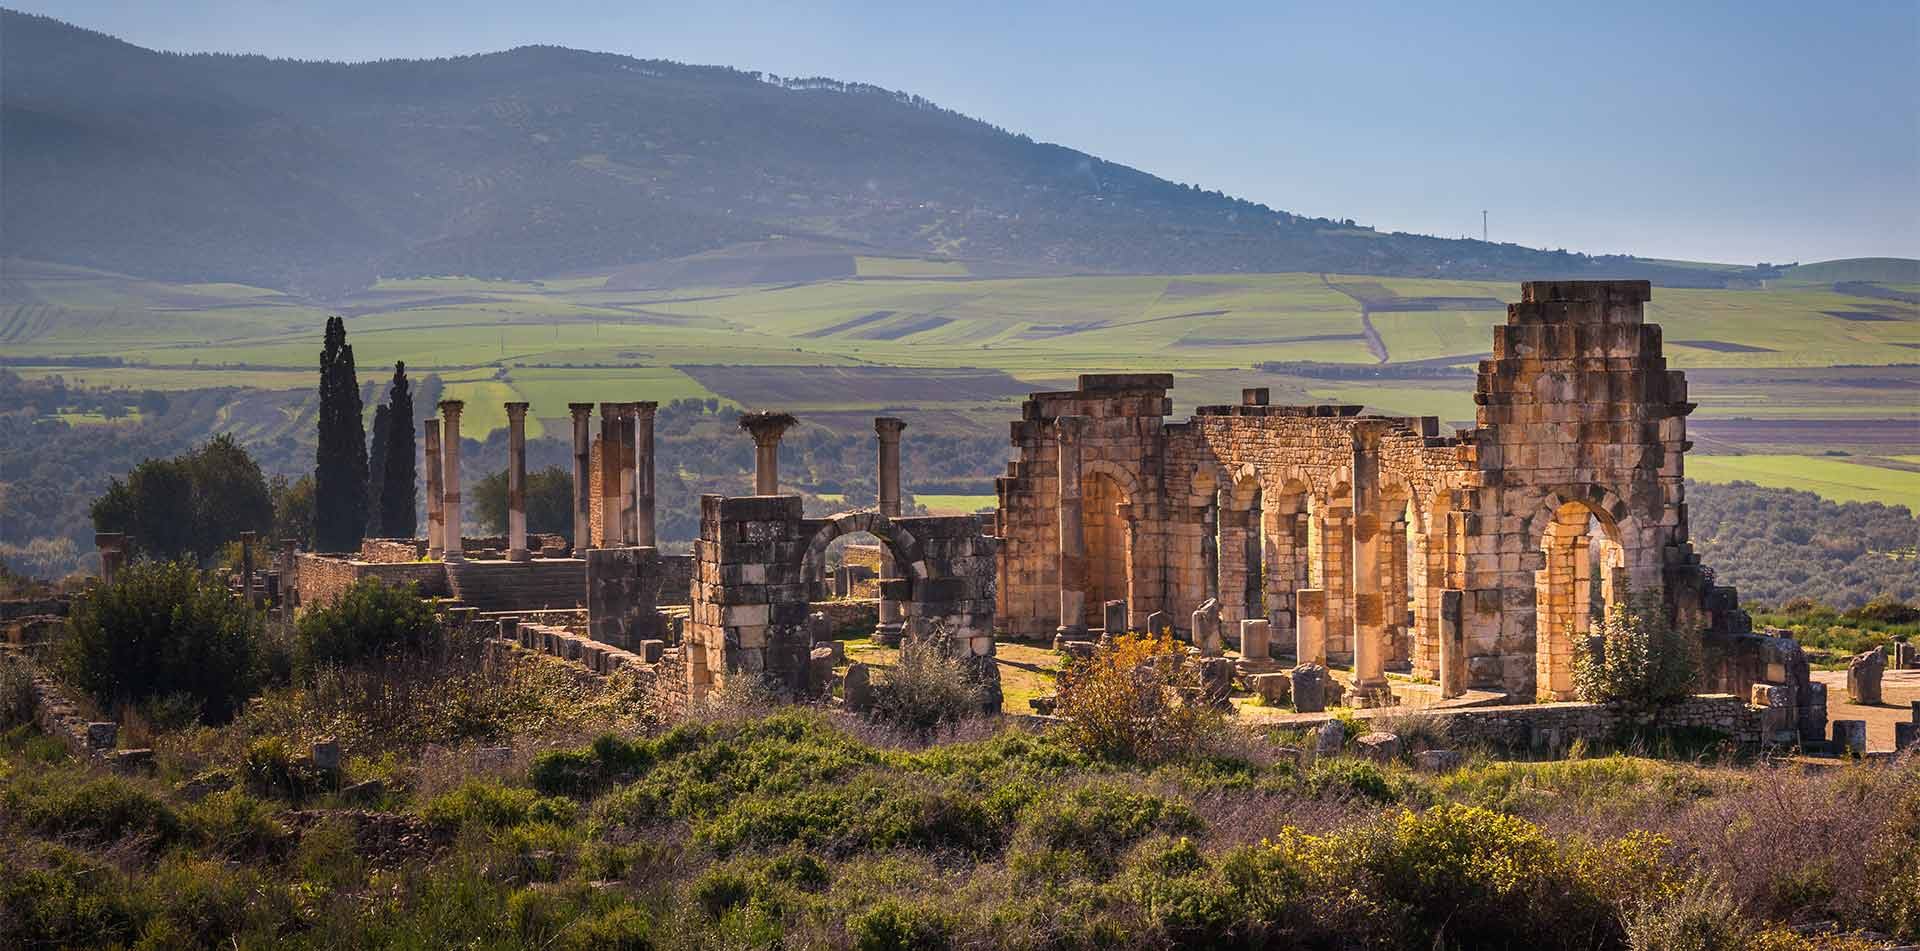 Africa Morocco Volubilis scenic archaeological site ancient basilica of Roman ruins - luxury vacation destinations